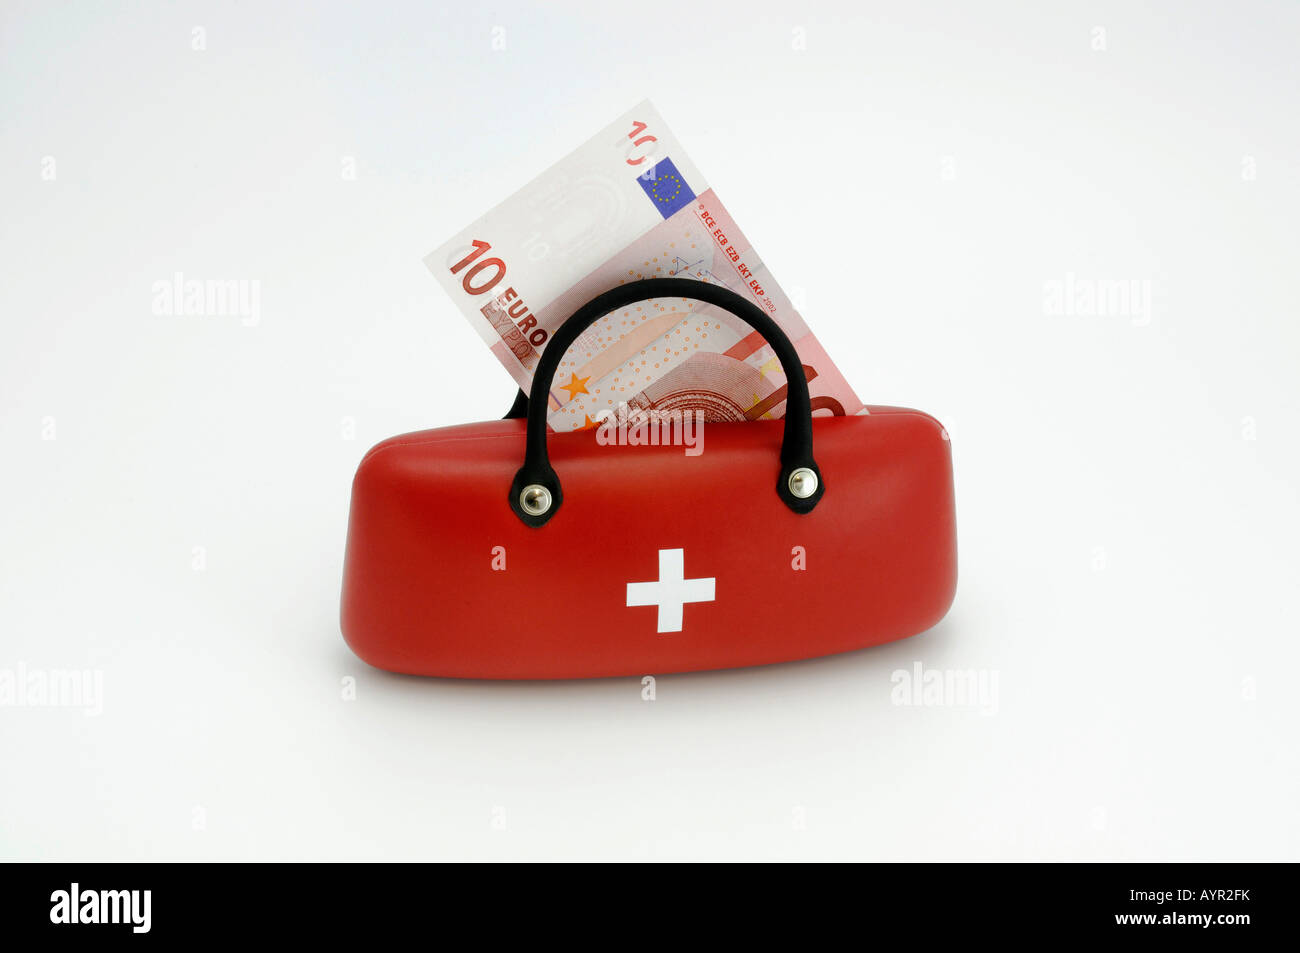 10-Euro note in a medical bag, symbol for doctor's fees - Stock Image